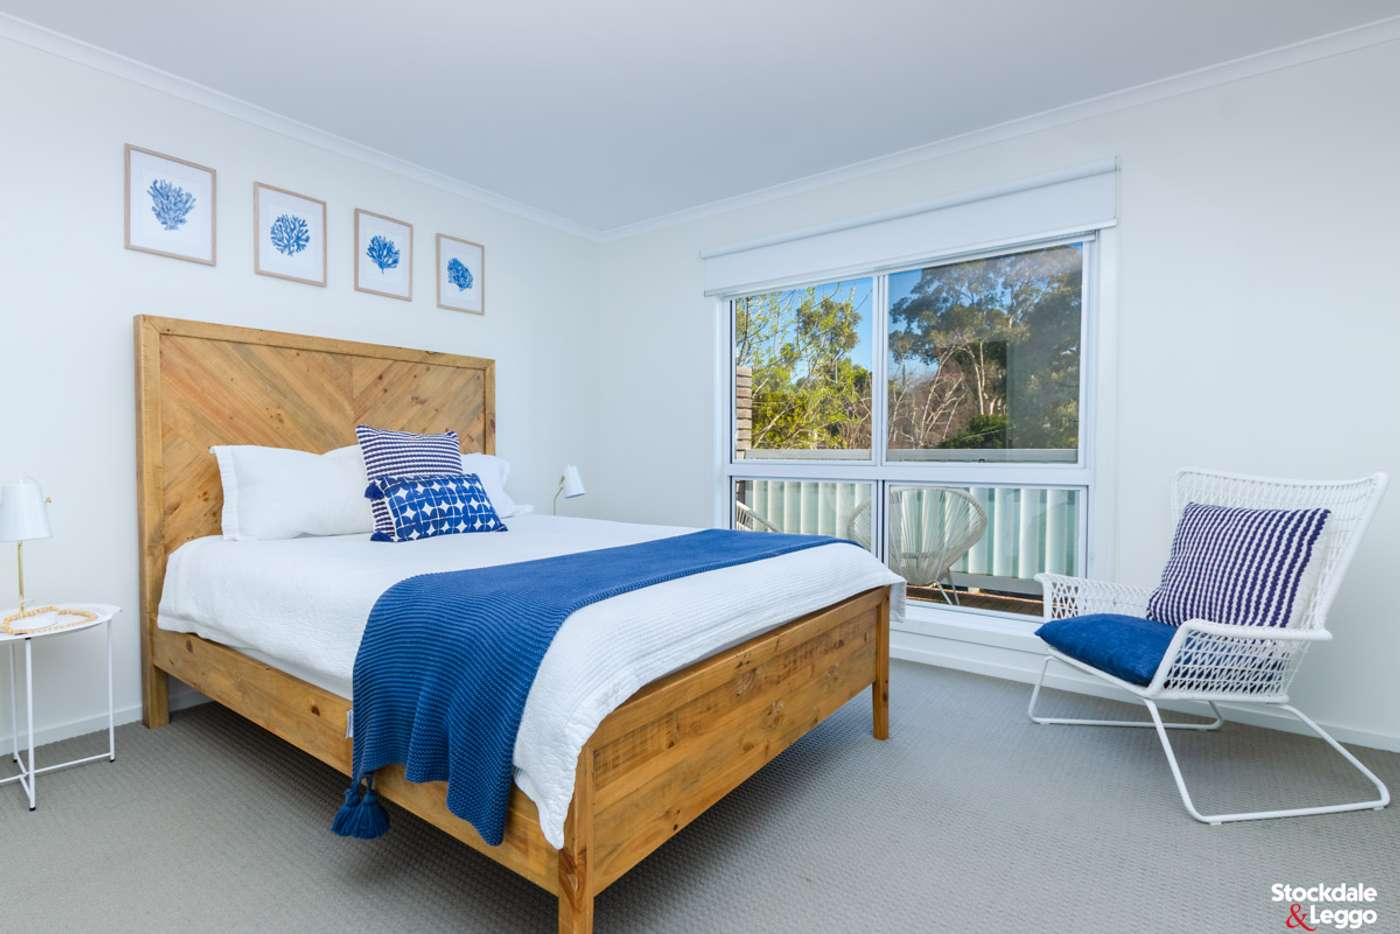 Seventh view of Homely house listing, 2/9 Shamrock Avenue, Cowes VIC 3922